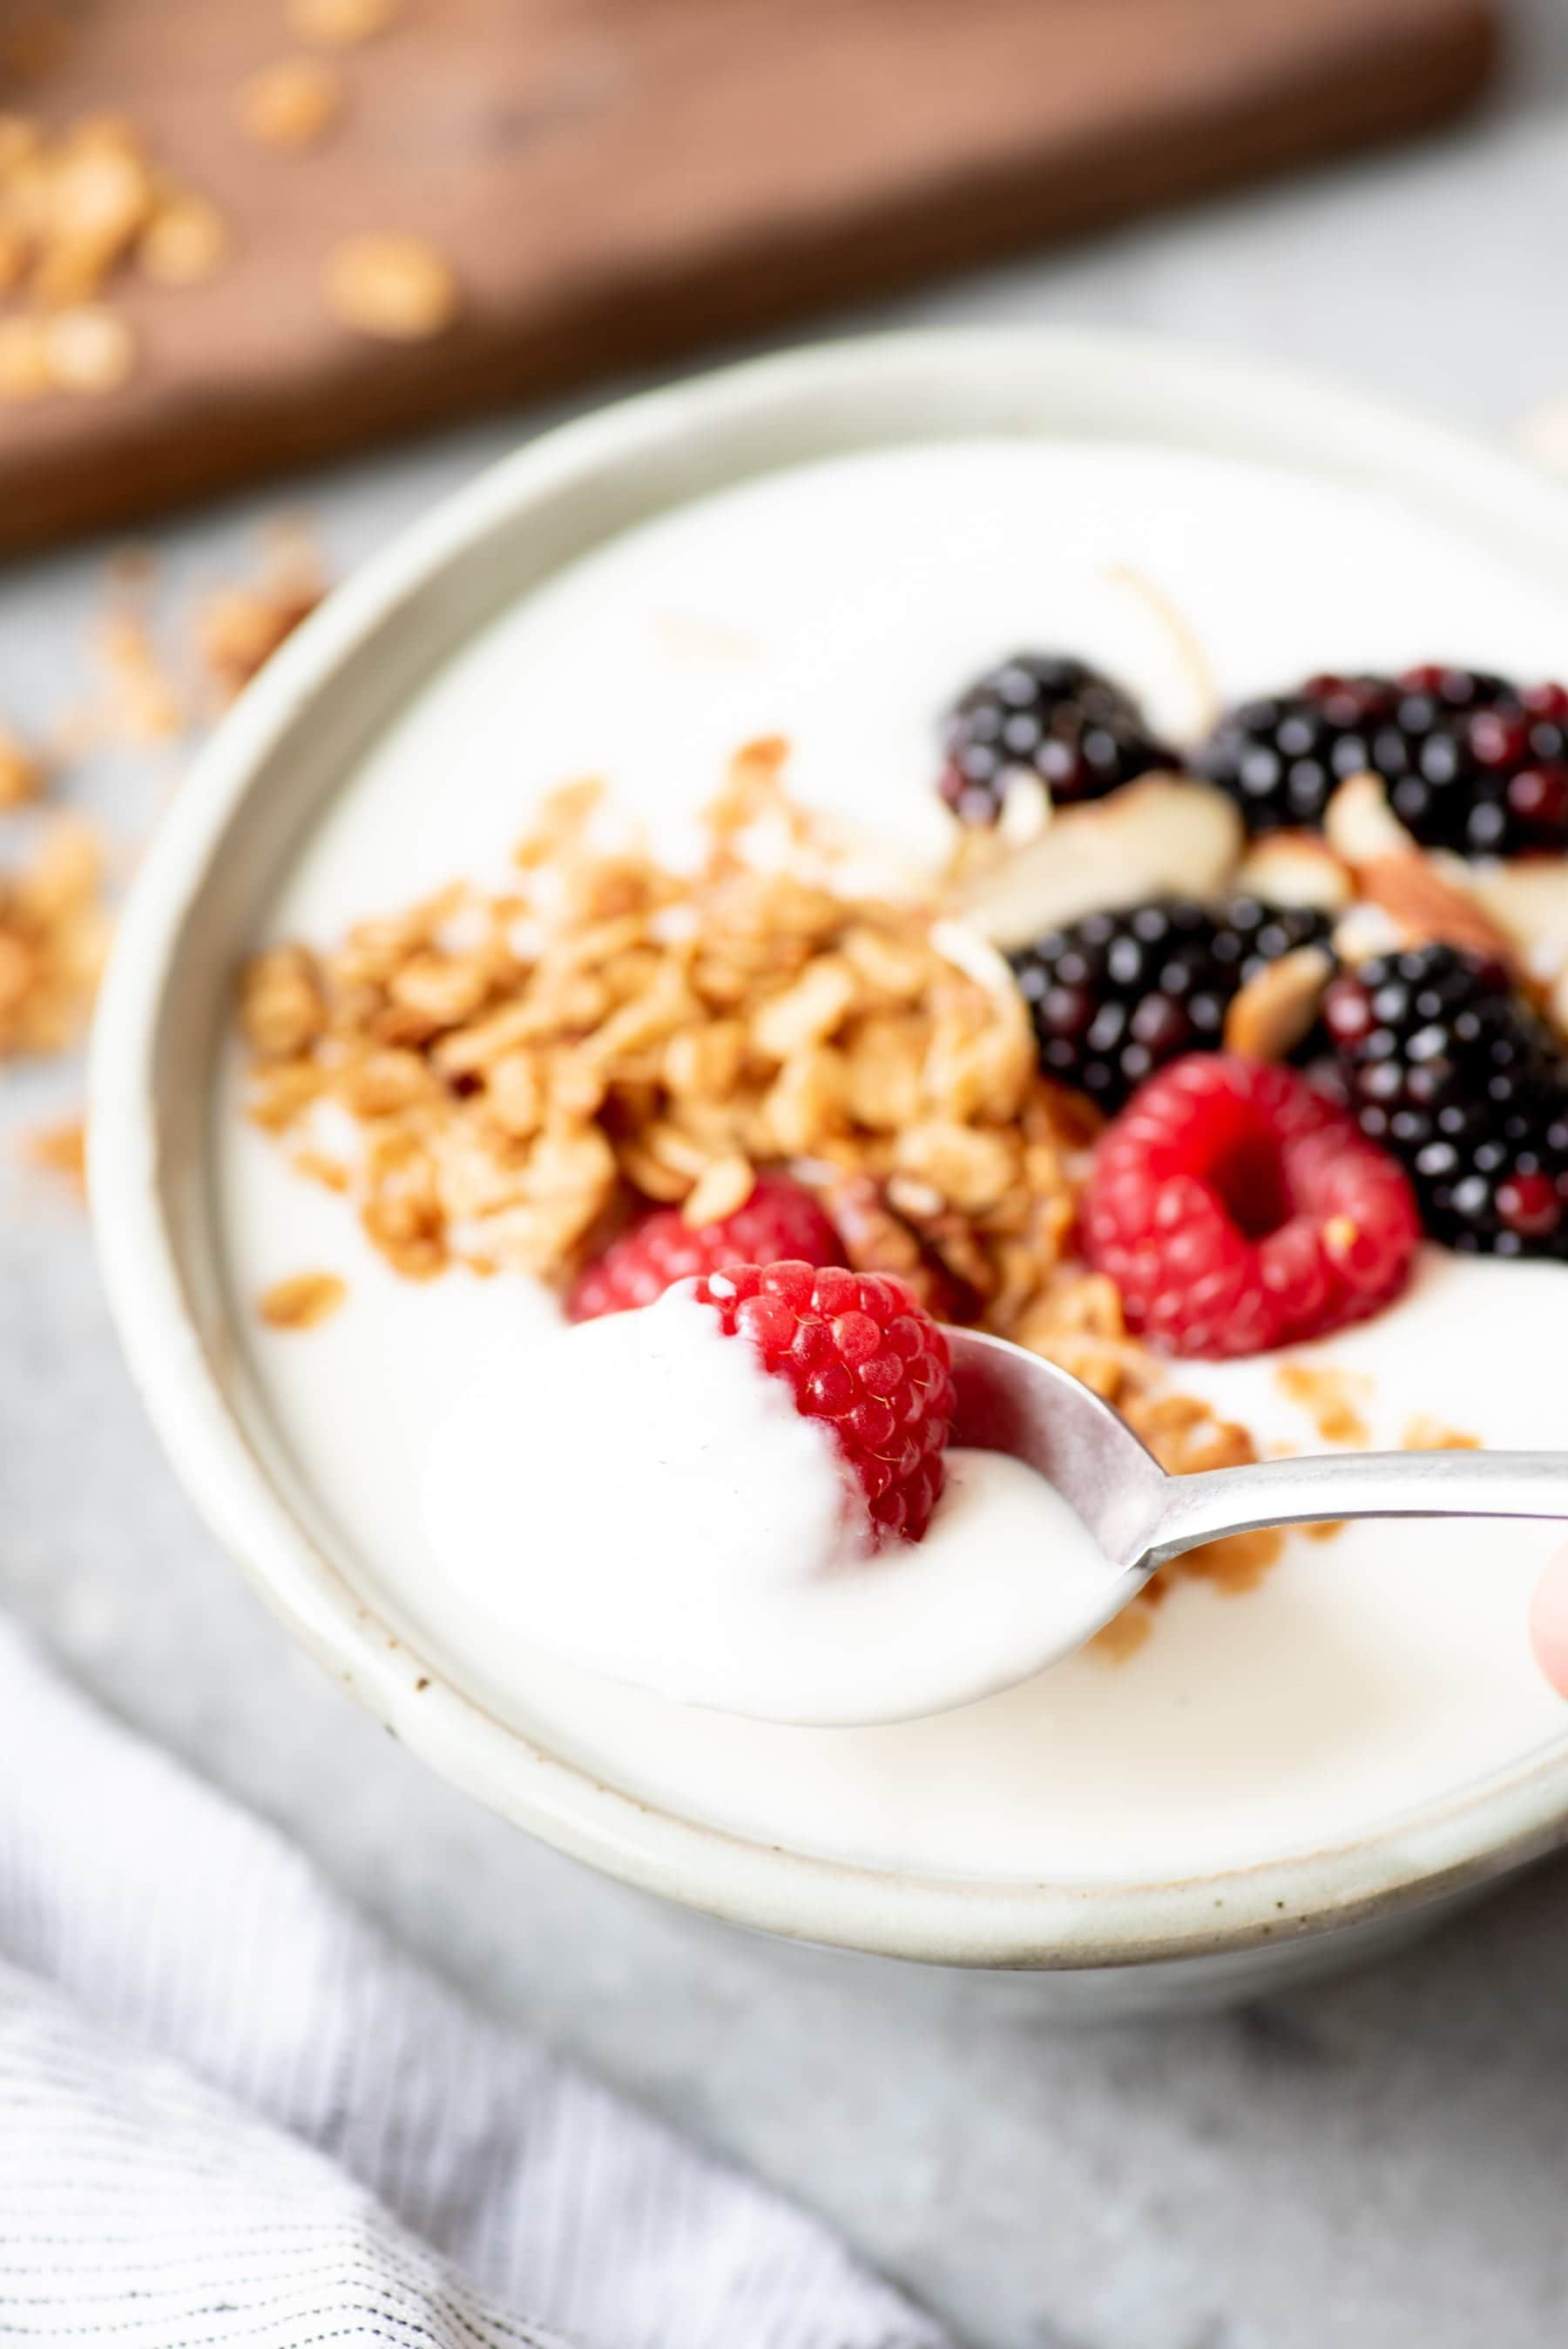 Spoon dipping into a bowl of 24-hour yogurt topped with granola and berries